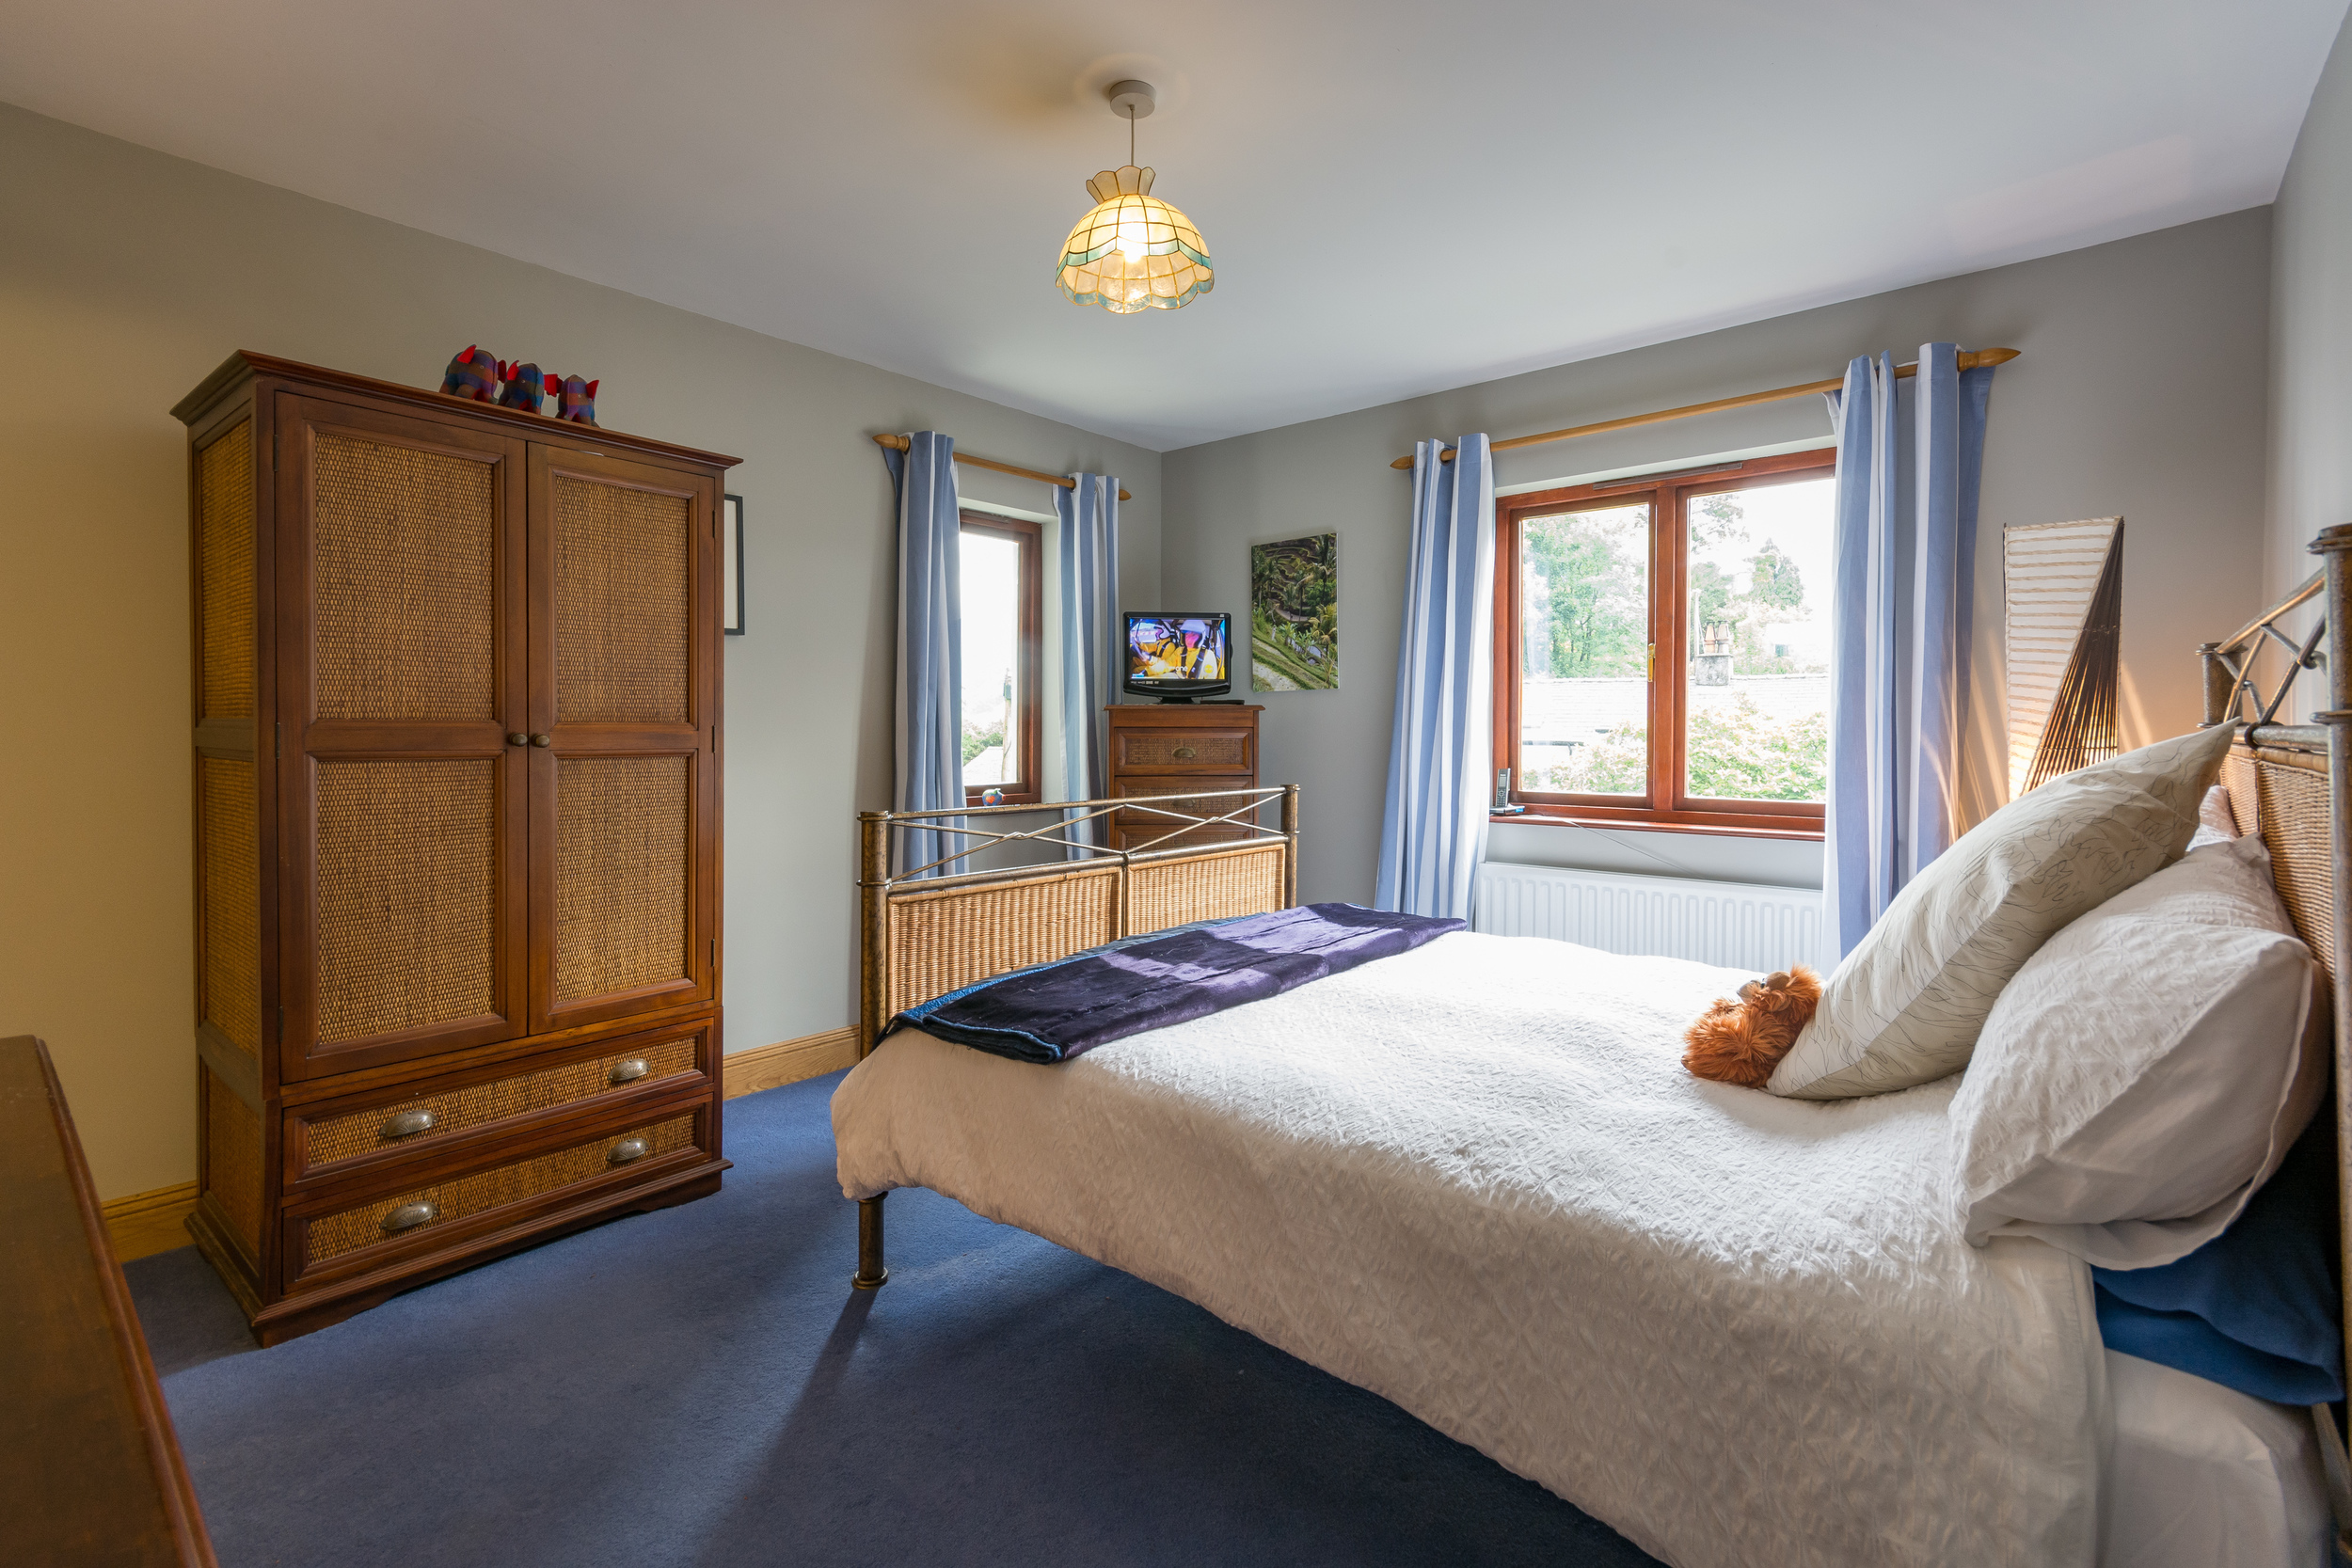 Ensuite Bedroom 1 - Beech Nook Thornthwaite, Keswick Holidays Self Catering.jpg